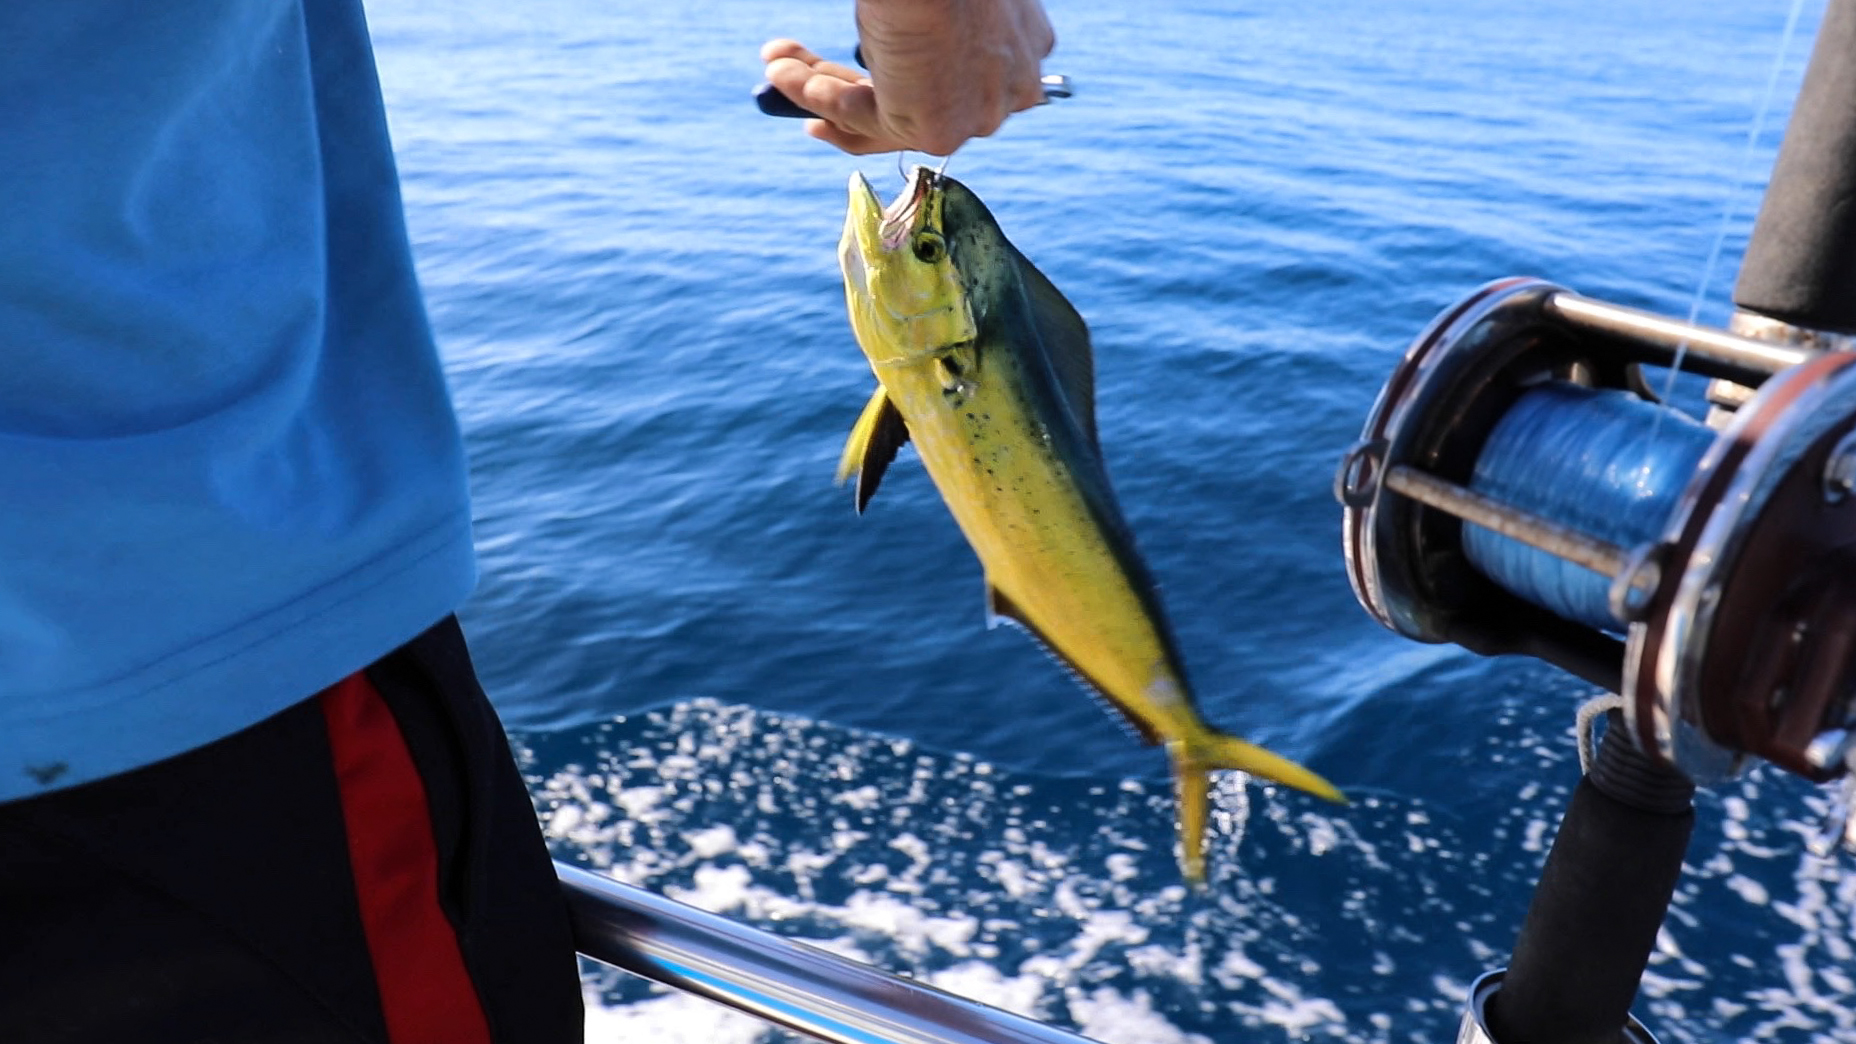 Caught our first mahi. He was just a little guy so we threw him back!